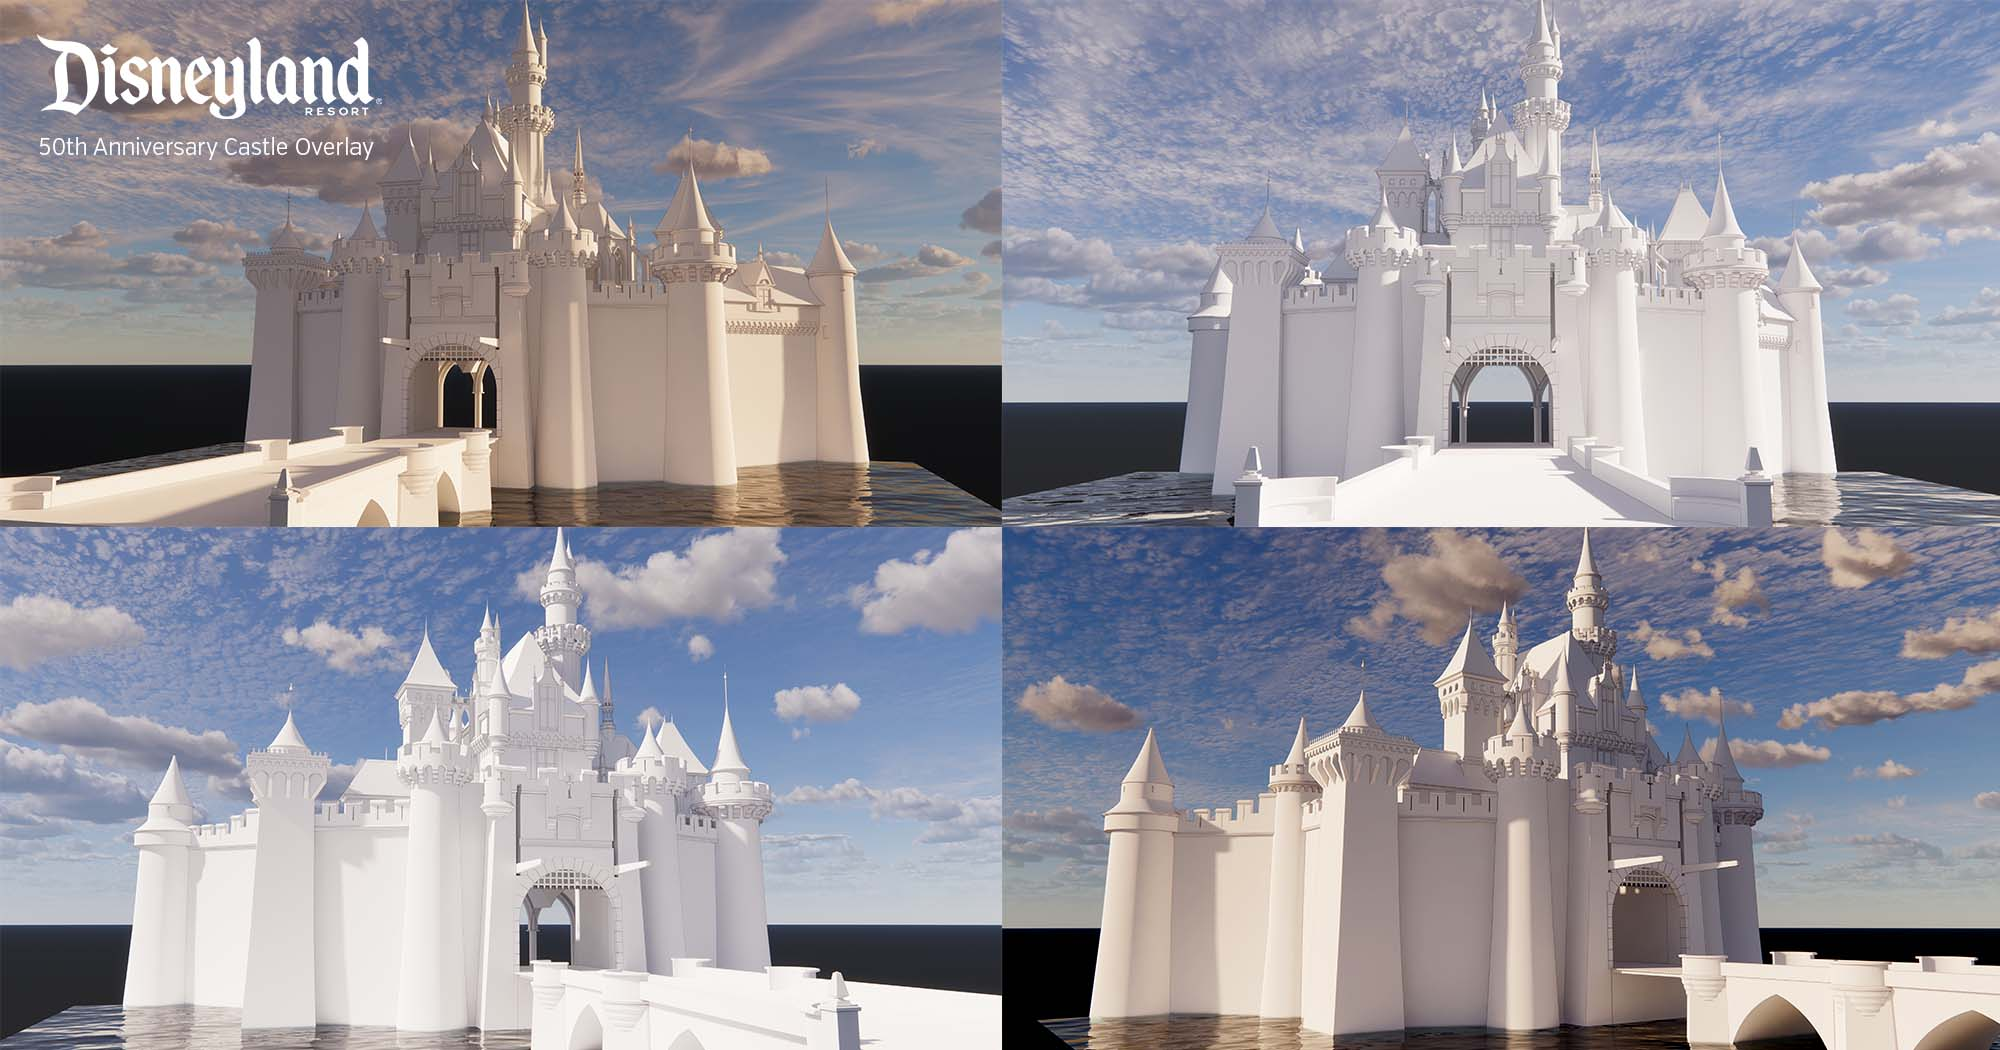 Disneyland's Sleeping Beauty Castle - 50th Anniversary 3D Model